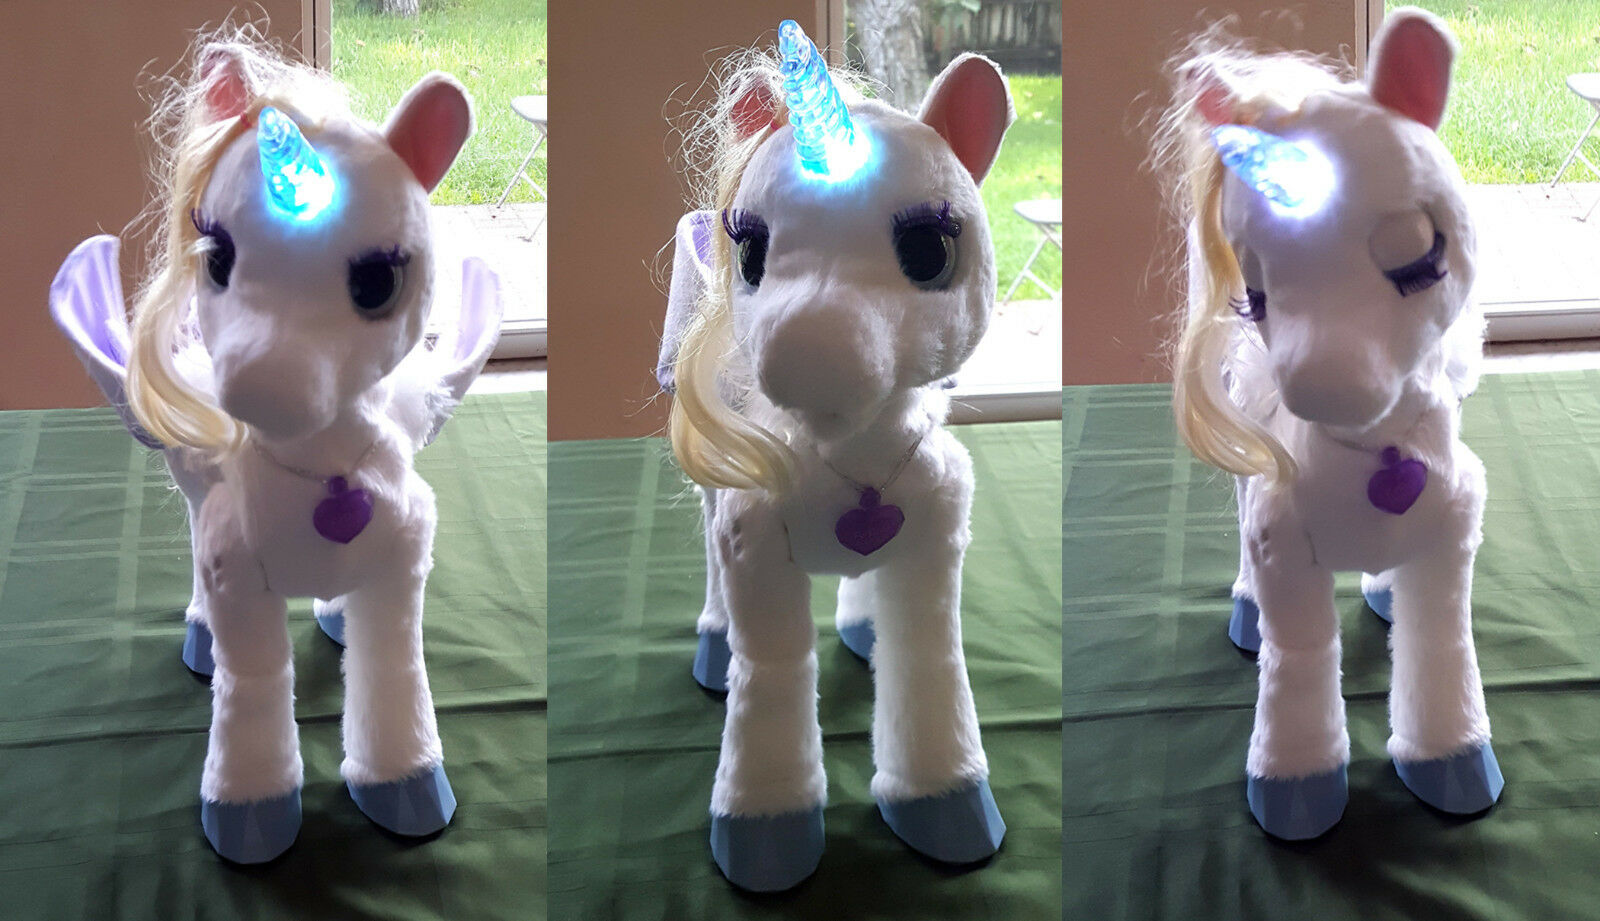 FurReal Friends StarLily My Magical Unicorn Horse Star Lilly Lily Fur Real works